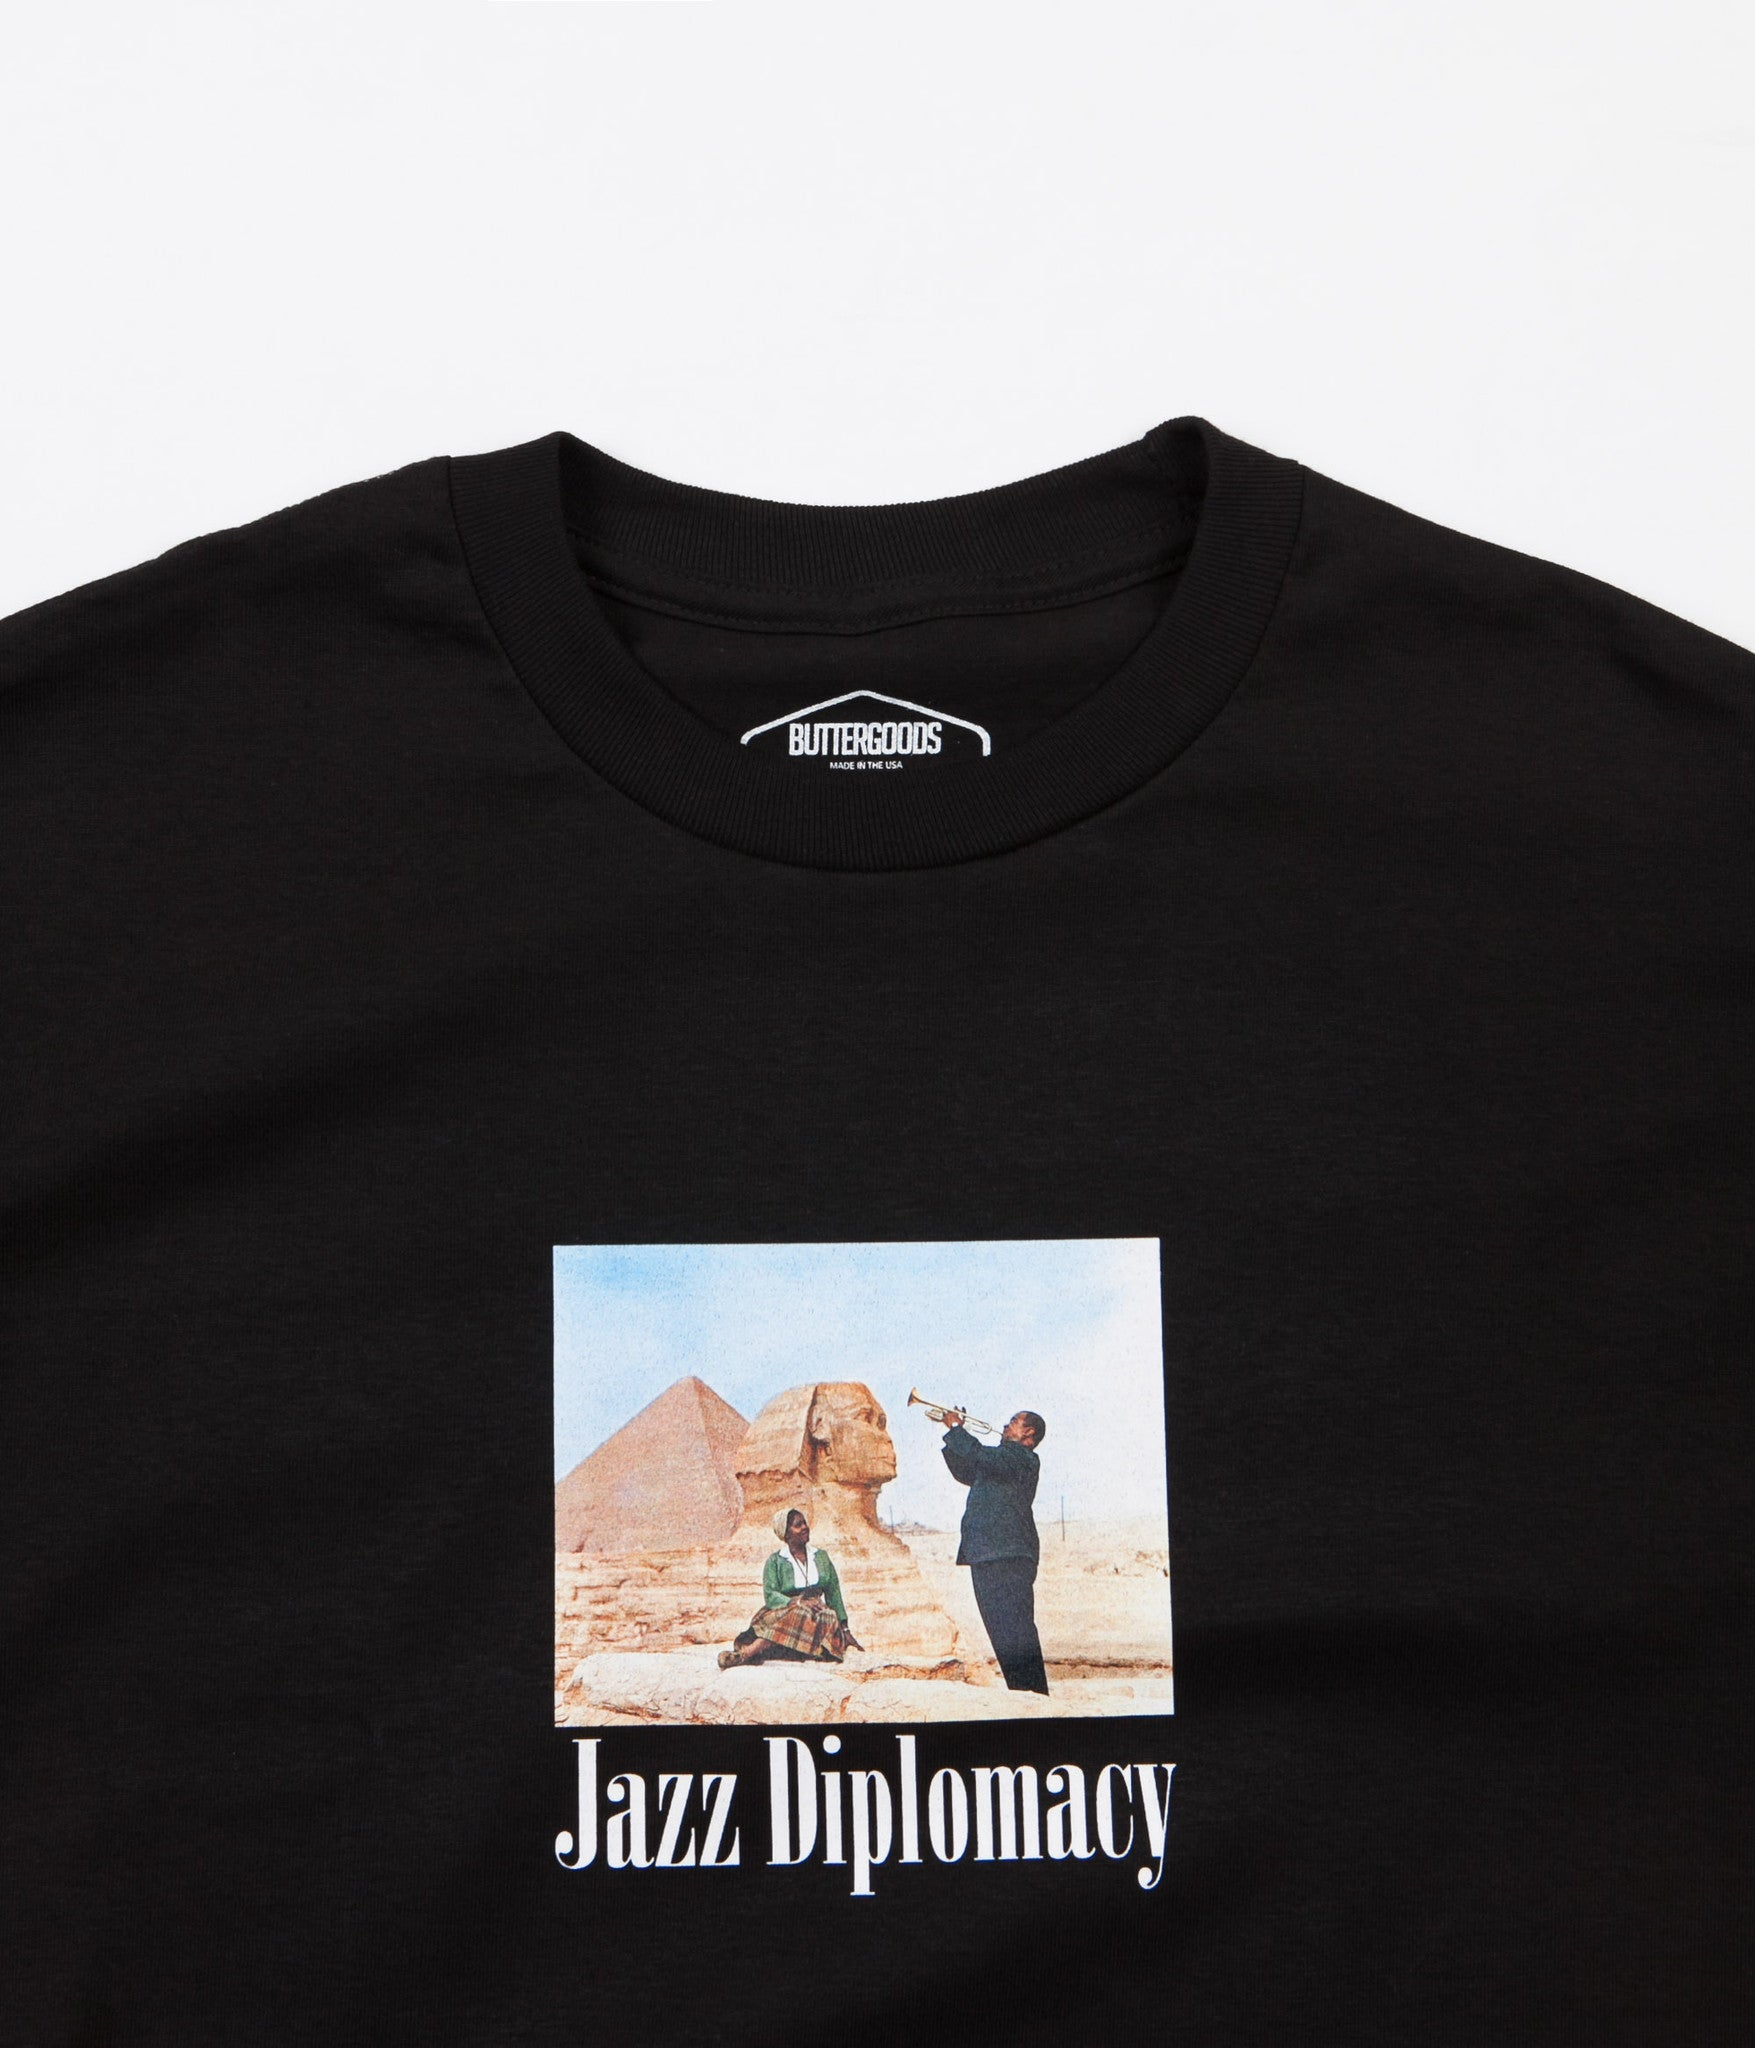 Butter Goods Jazz Diplomacy T-Shirt - Black